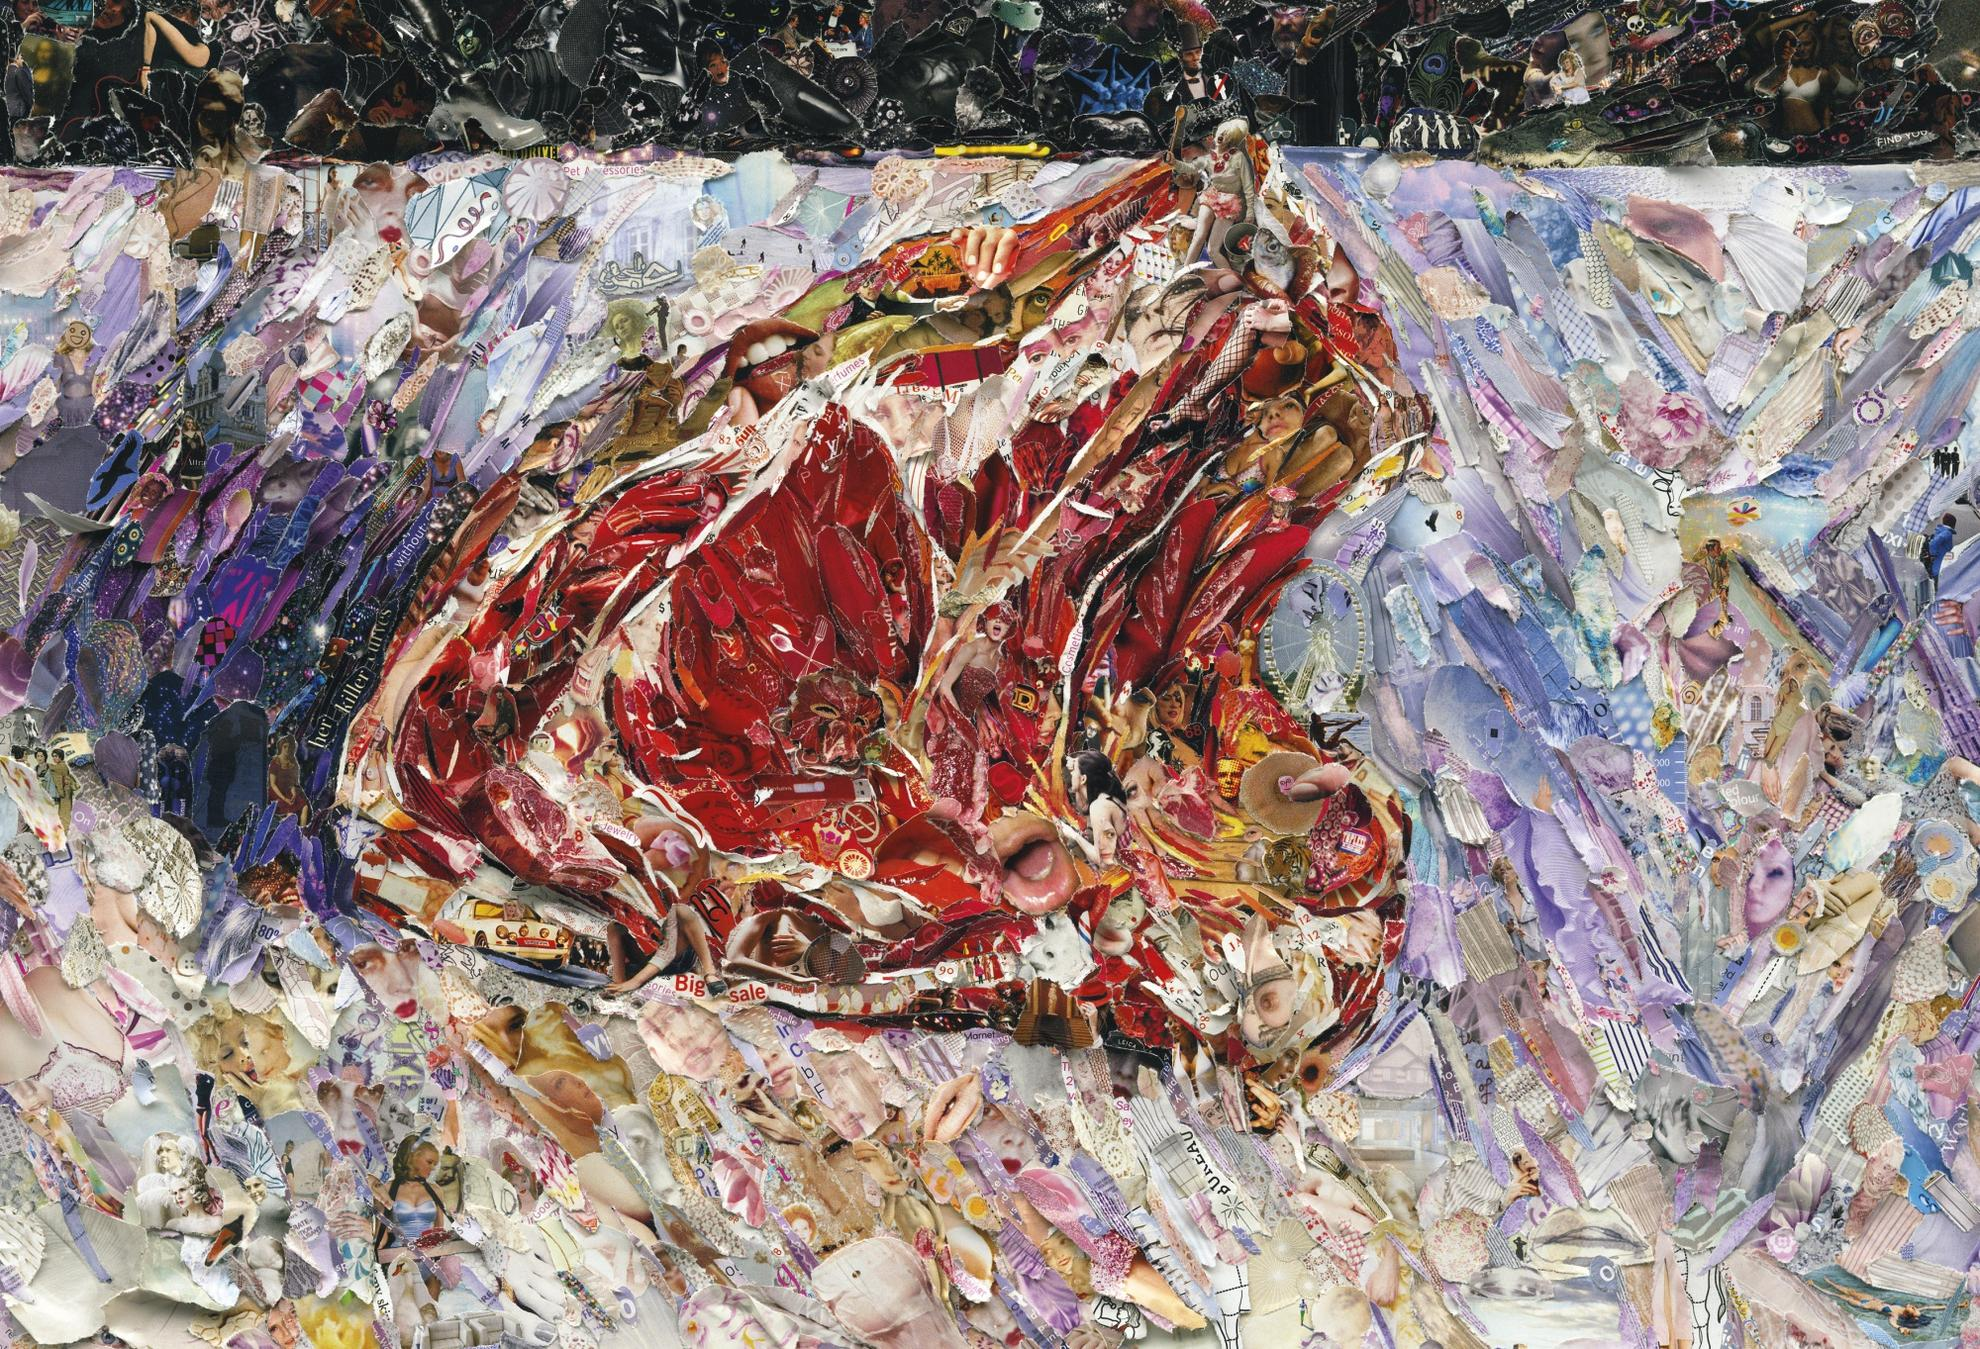 Vik Muniz-Pictures Of Magazine 2: Rib Of Beef After Gustave Caillebotte-2012